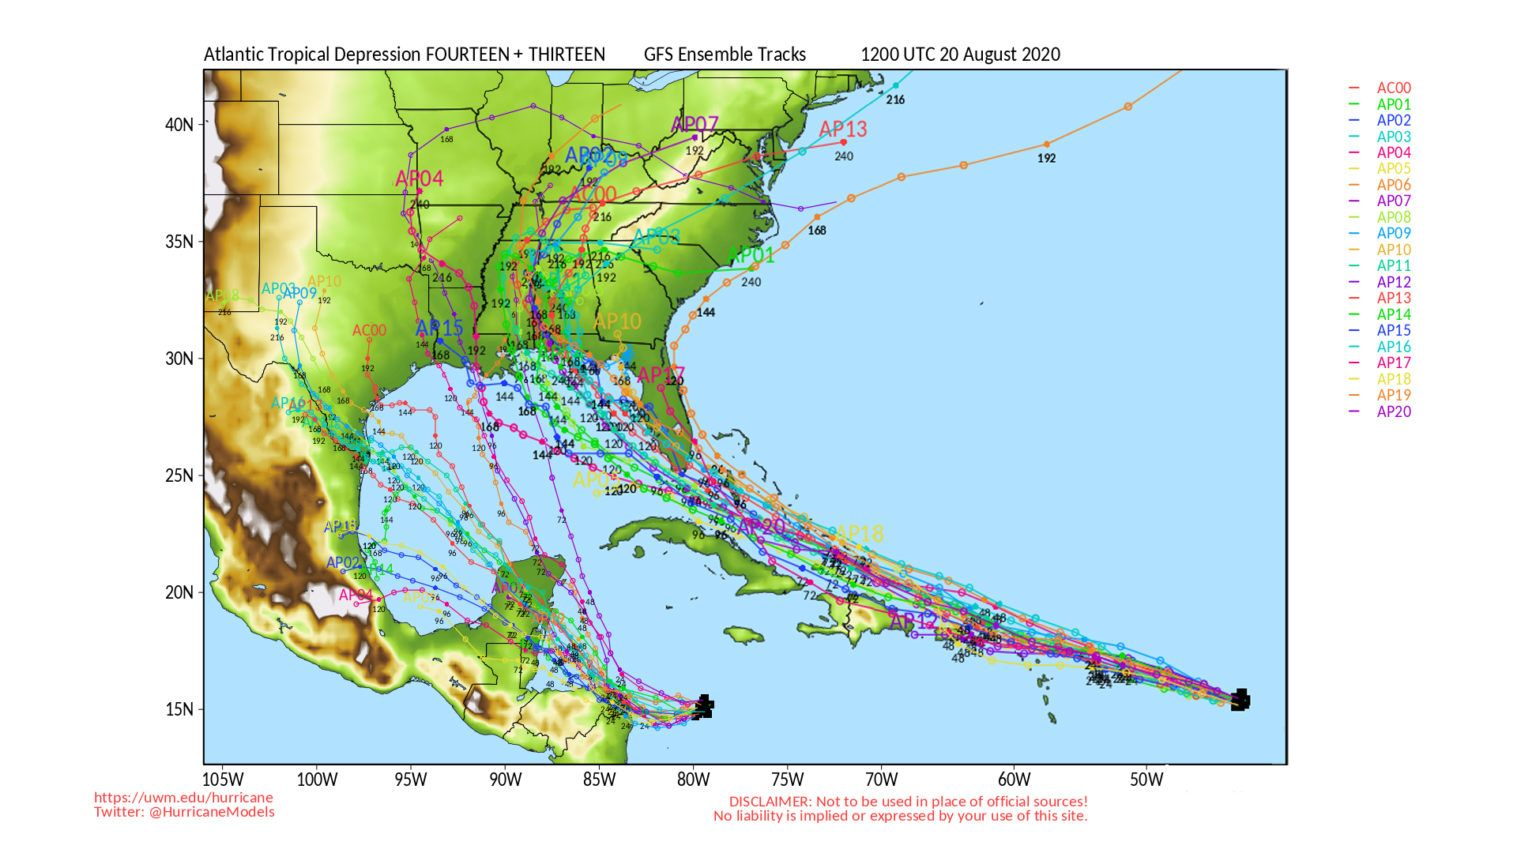 Caribbean Storms 13 And 14 Could Collide To Become Fujiwara Megastorm In 2020 National Hurricane Center Weather Radio Caribbean